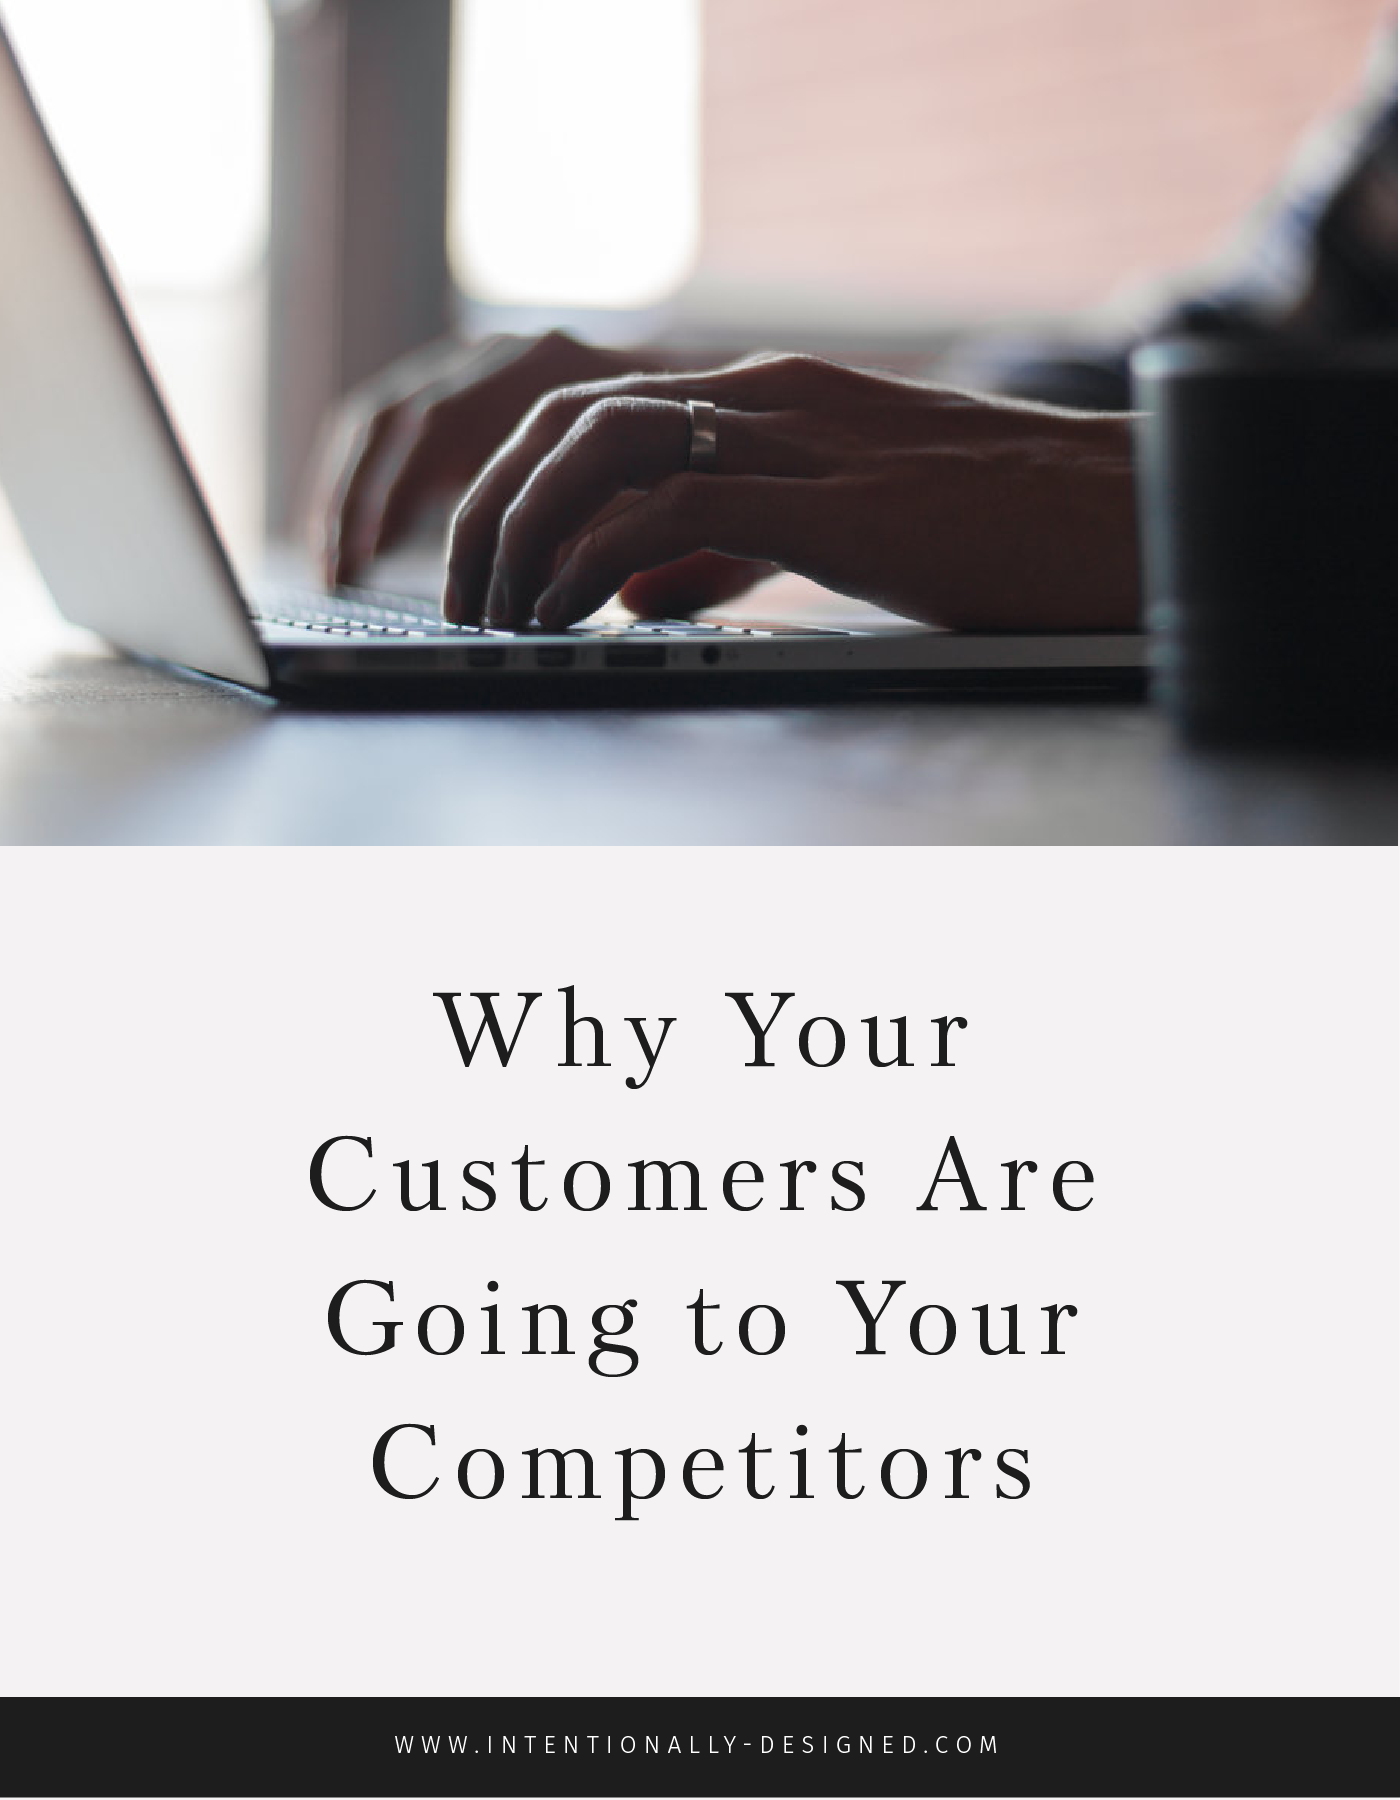 Why Your Customers Are Going to Your Competitors